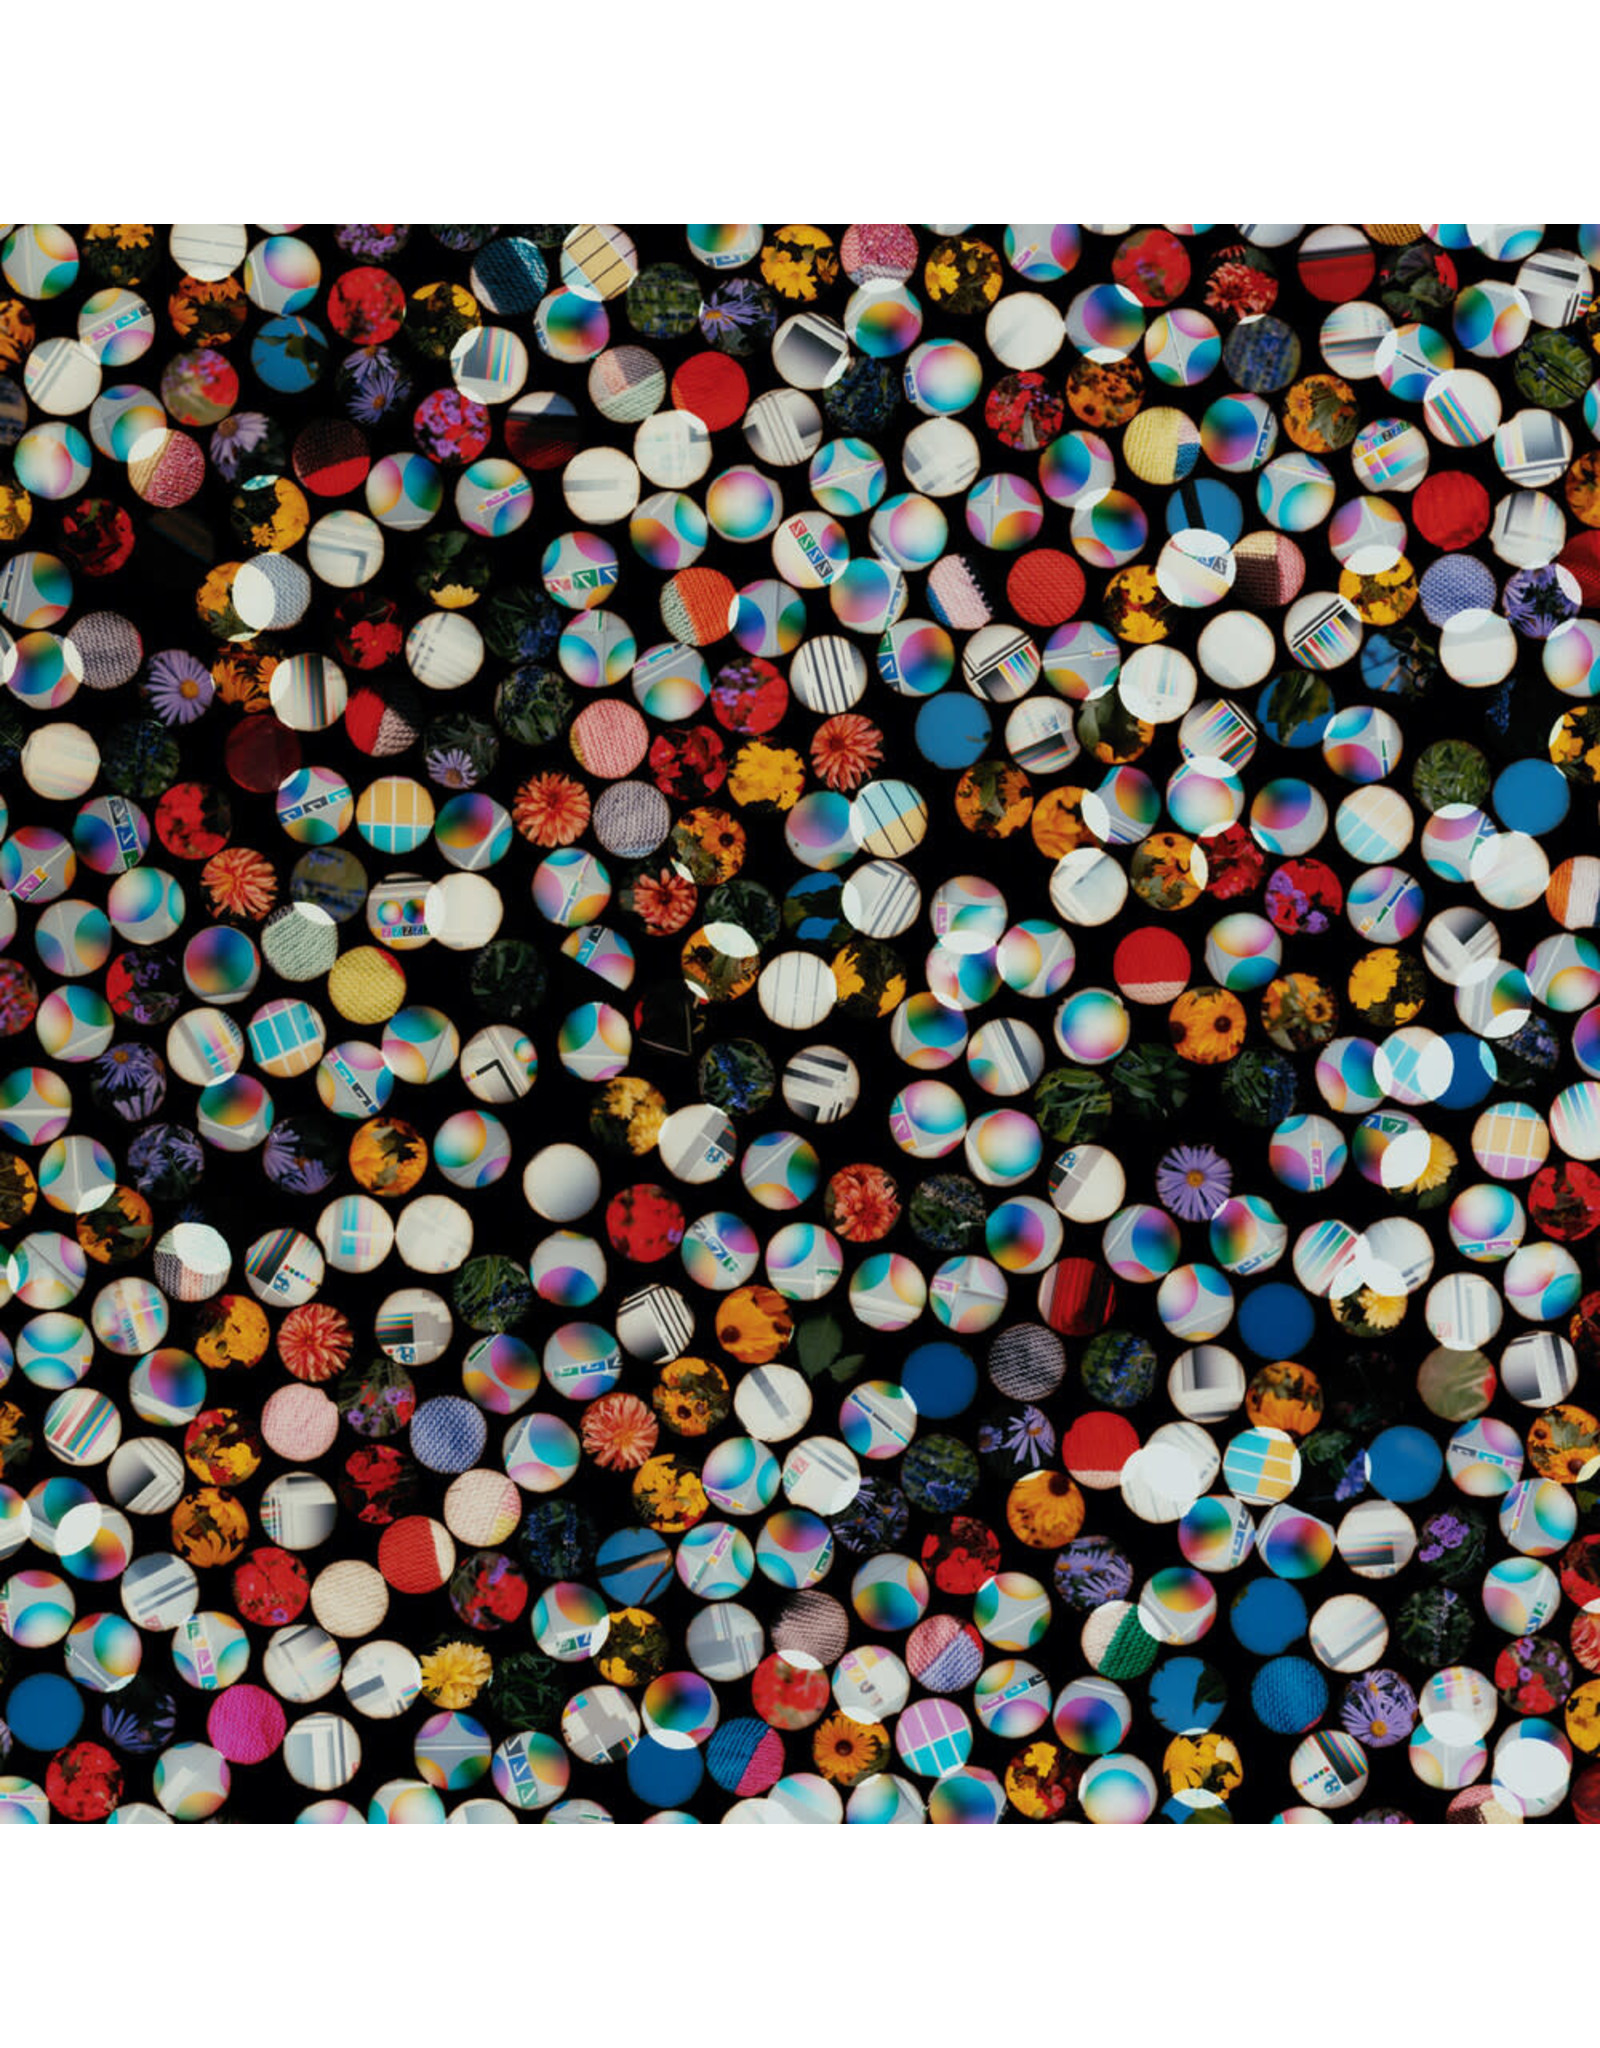 Four Tet - There Is Love In You (Expanded) 2LP